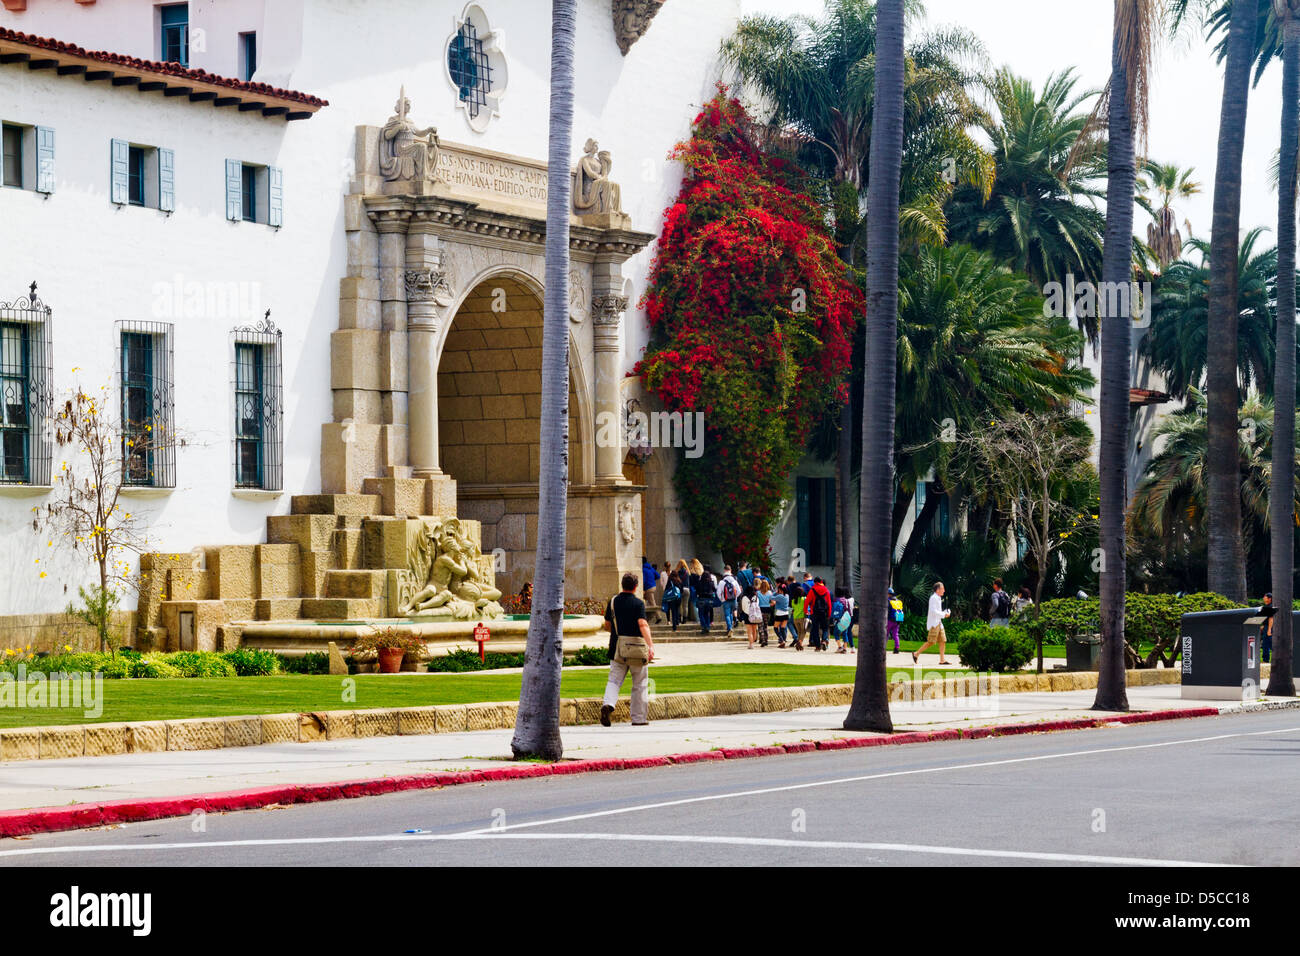 Sightseers visiting the courthouse in Santa Barbara, California - Stock Image